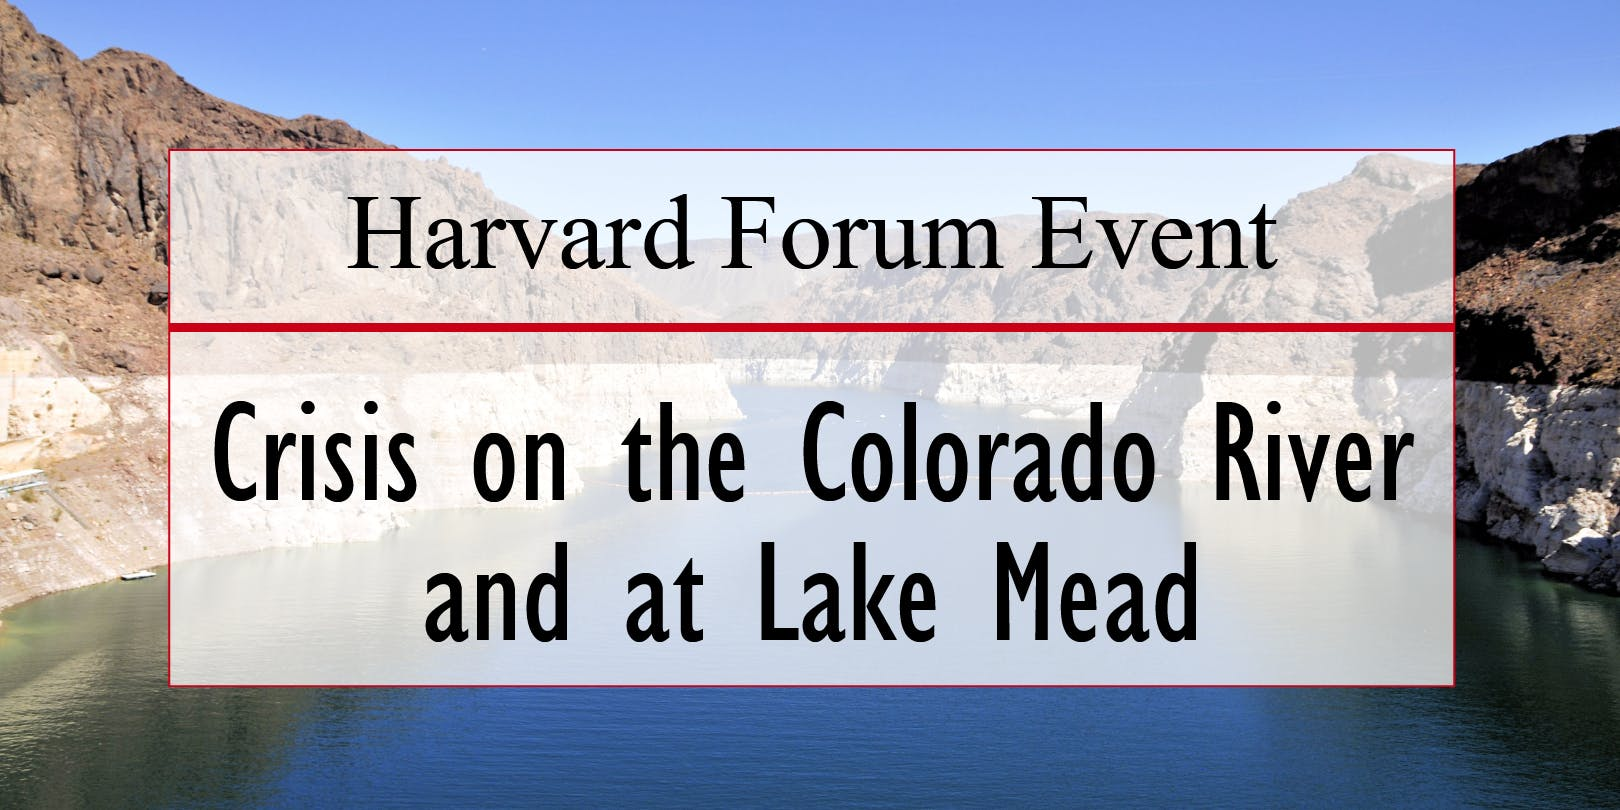 Harvard Forum Event: Crisis on the Colorado River and at Lake Mead